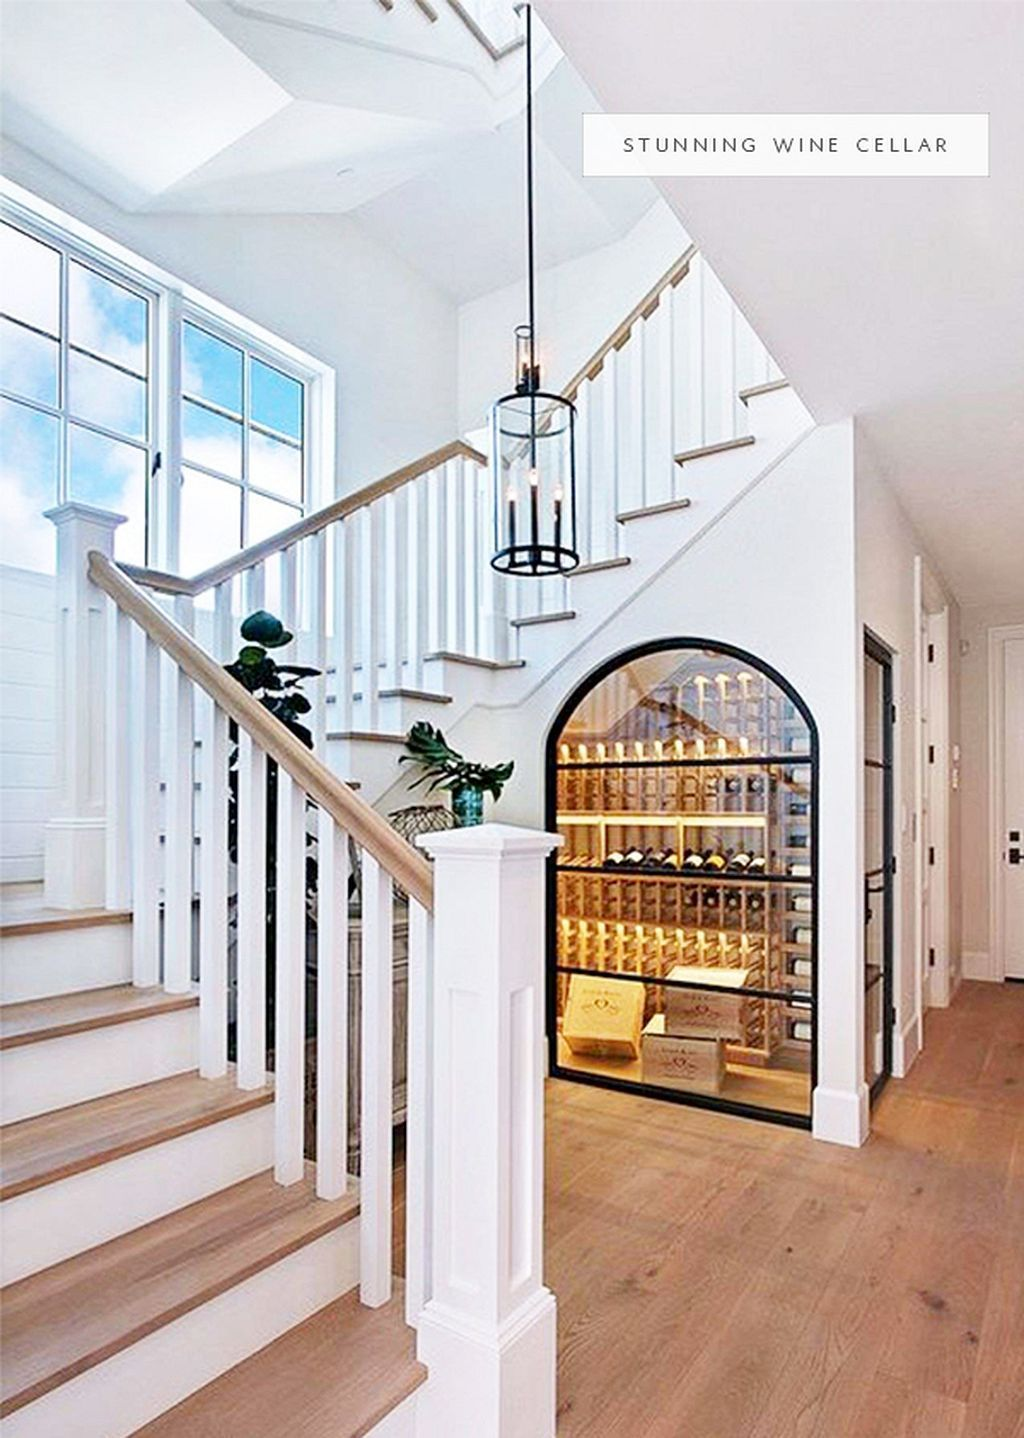 Most Creative Under The Stairs Home Designs - Wine cellar storage under the stairs